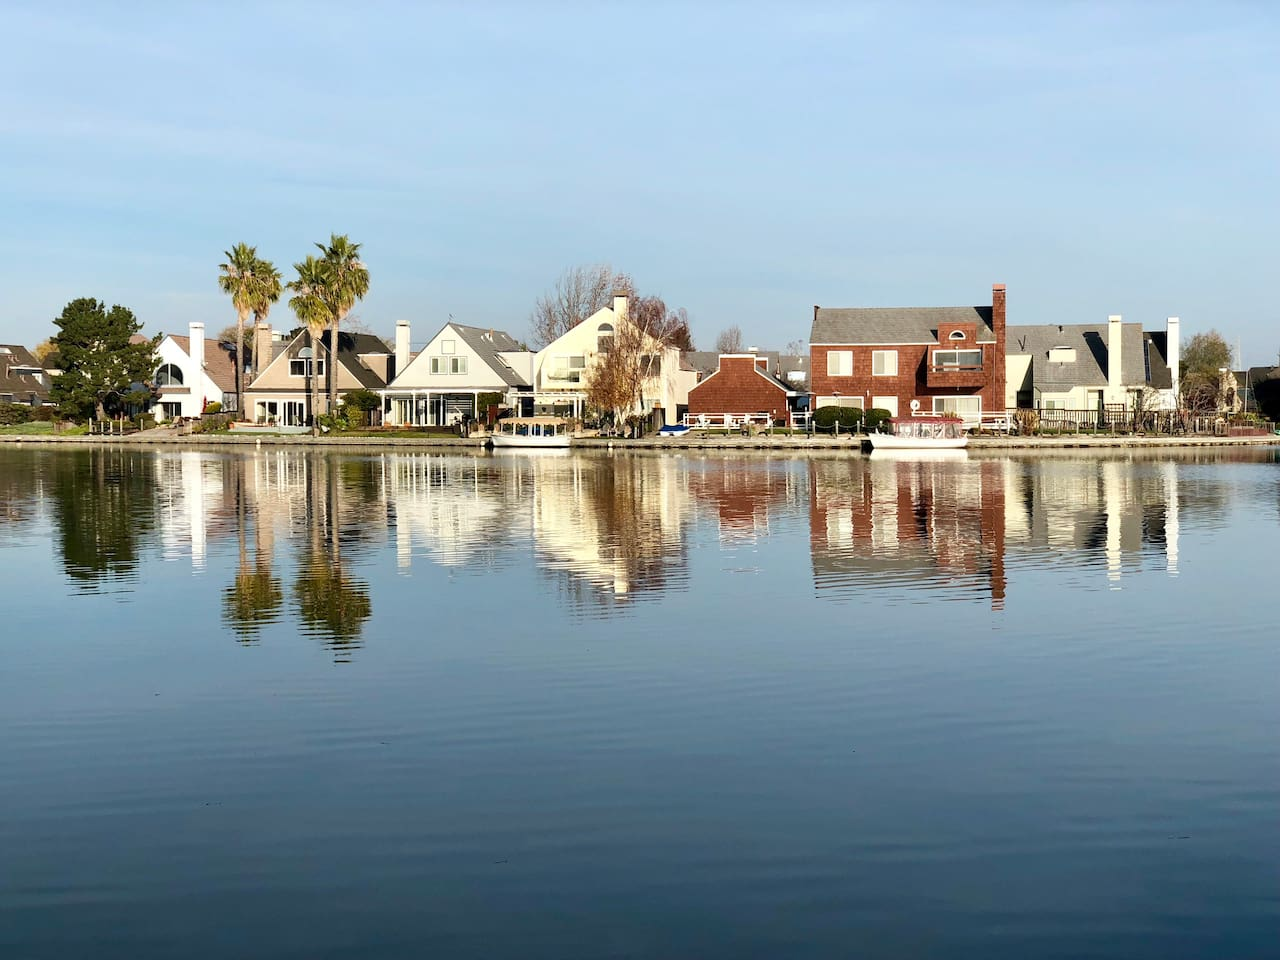 Foster City is where Silicon Valley has the highest quality of life. Our house is one parallel road to the lagoon.